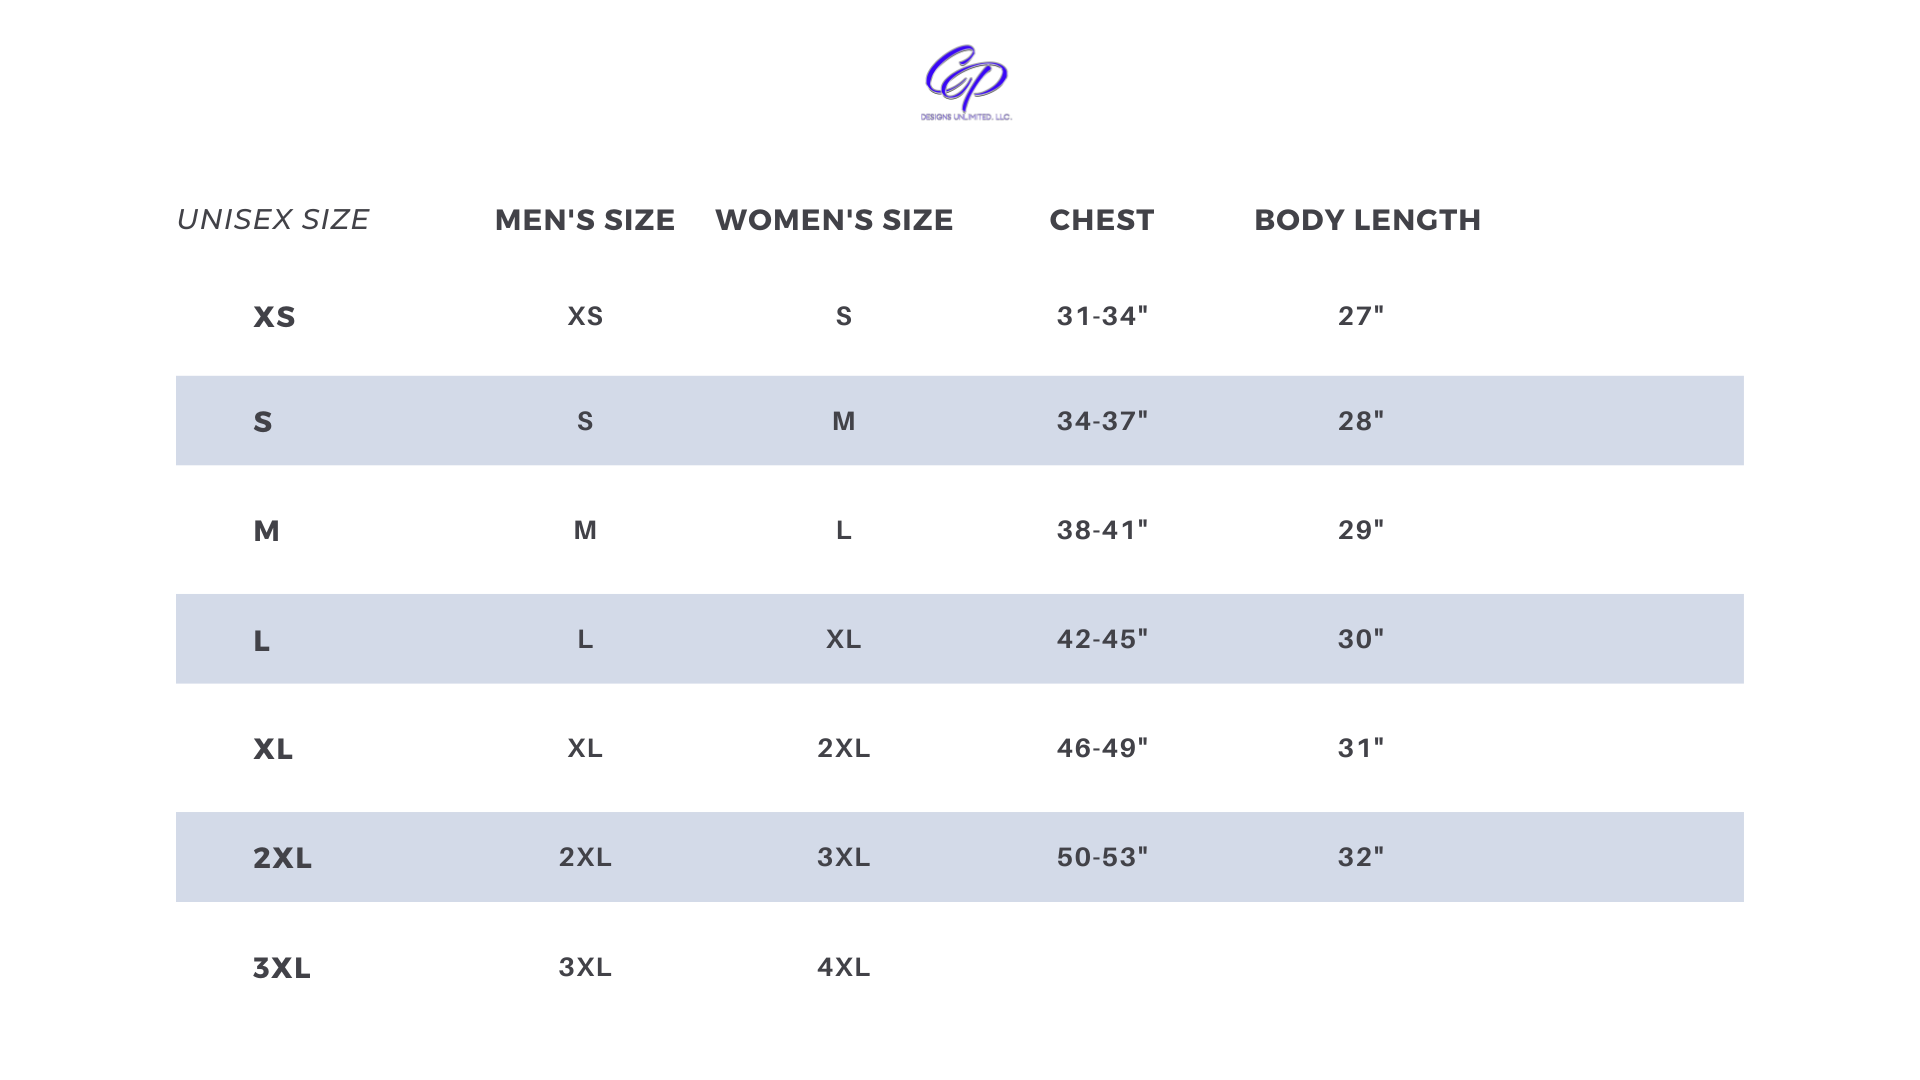 CP Designs Unlimited - Sizing Chart